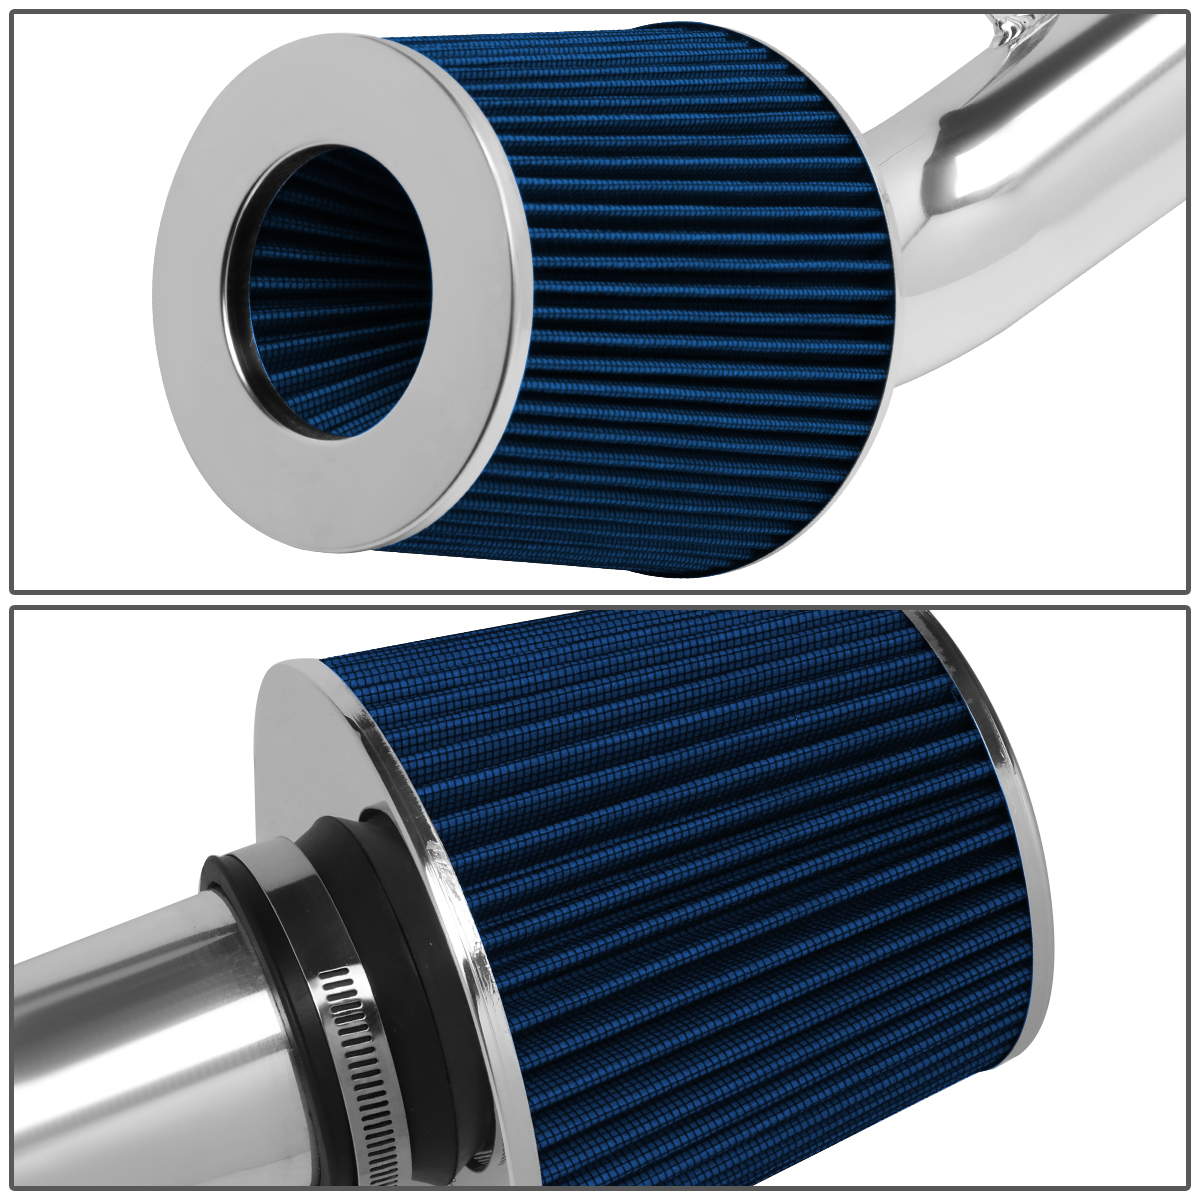 FOR 1998-2002 HONDA ACCORD V6 HIGH FLOW COLD AIR INTAKE SYSTEM+BLUE CONE FILTER